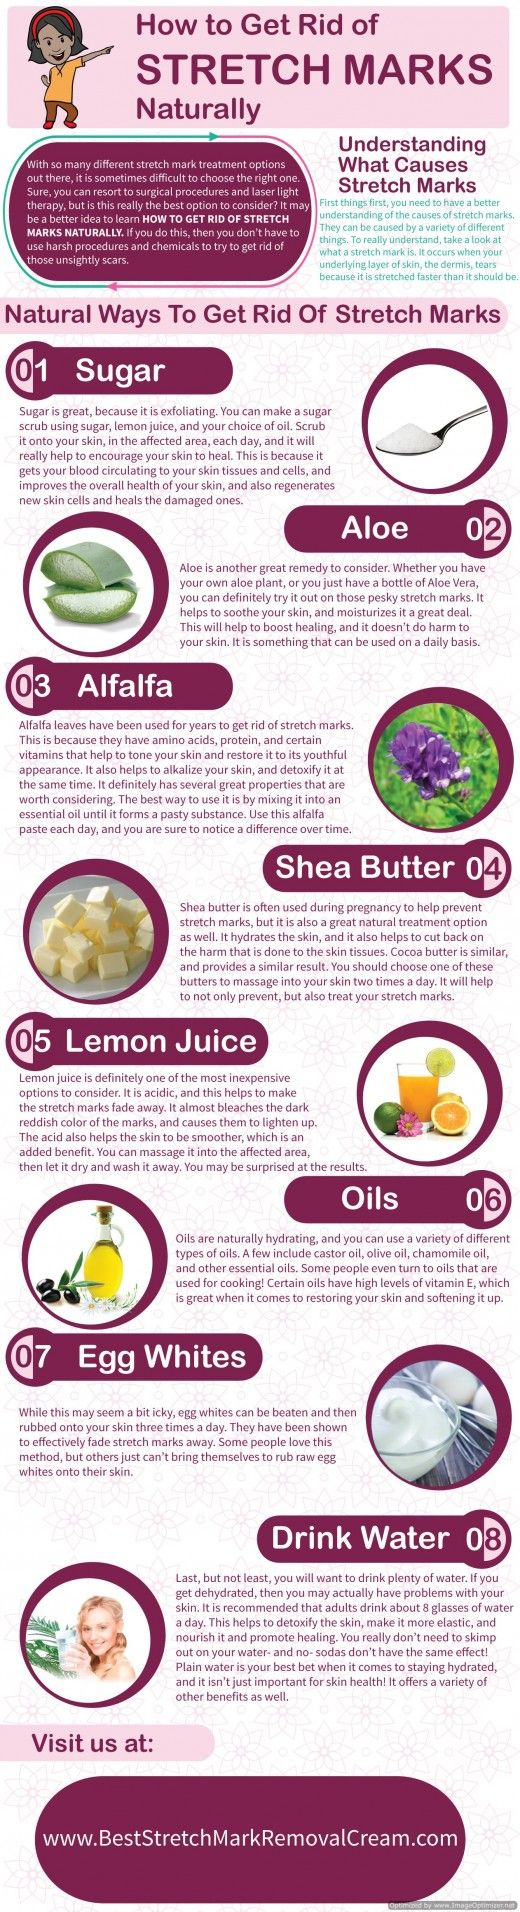 8 Ways to Get Rid of Stretch Marks Naturally …